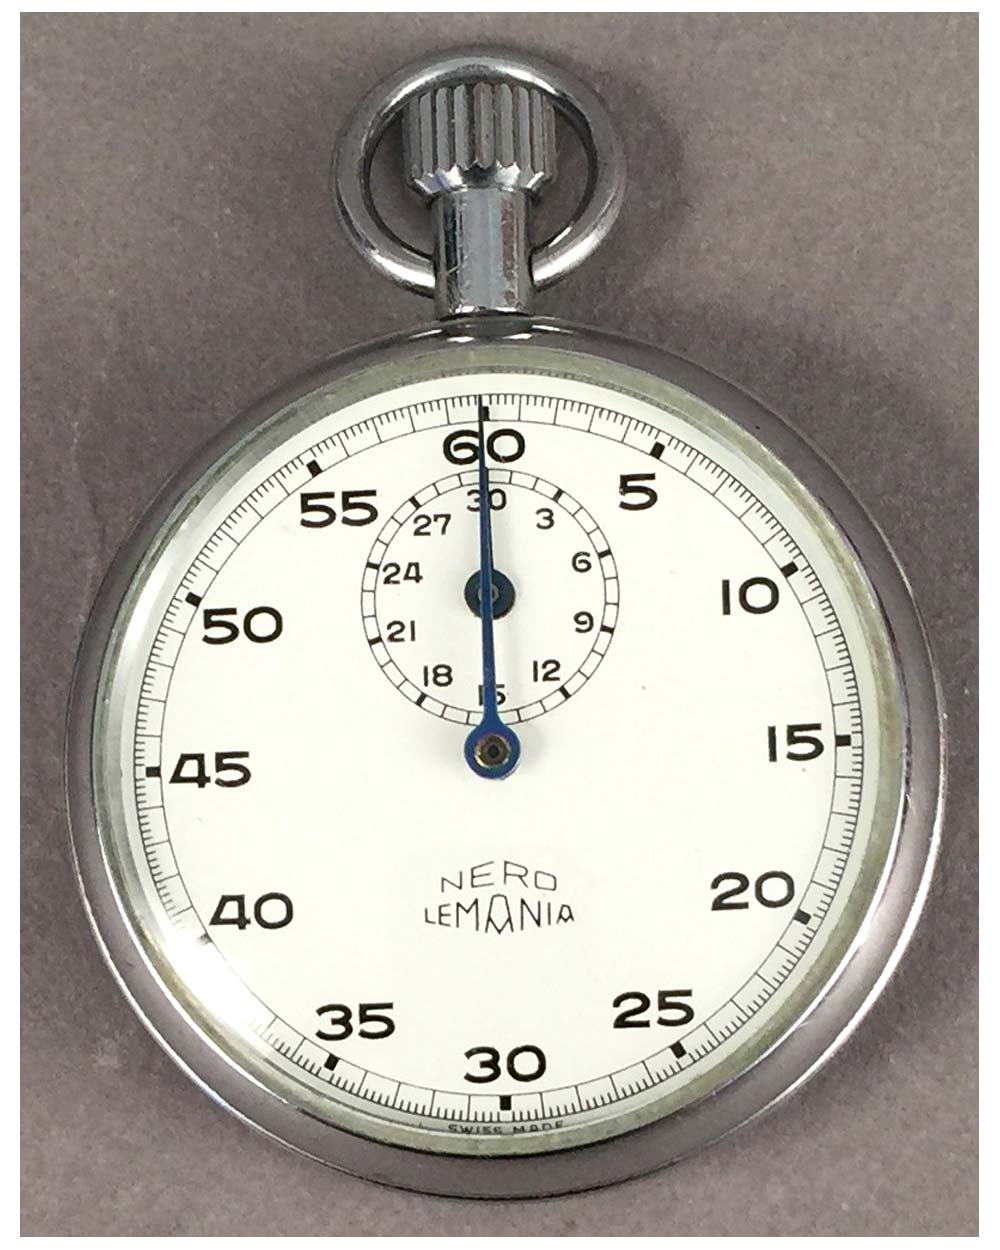 Nero Lemania Vintage Pocket Stop Watch